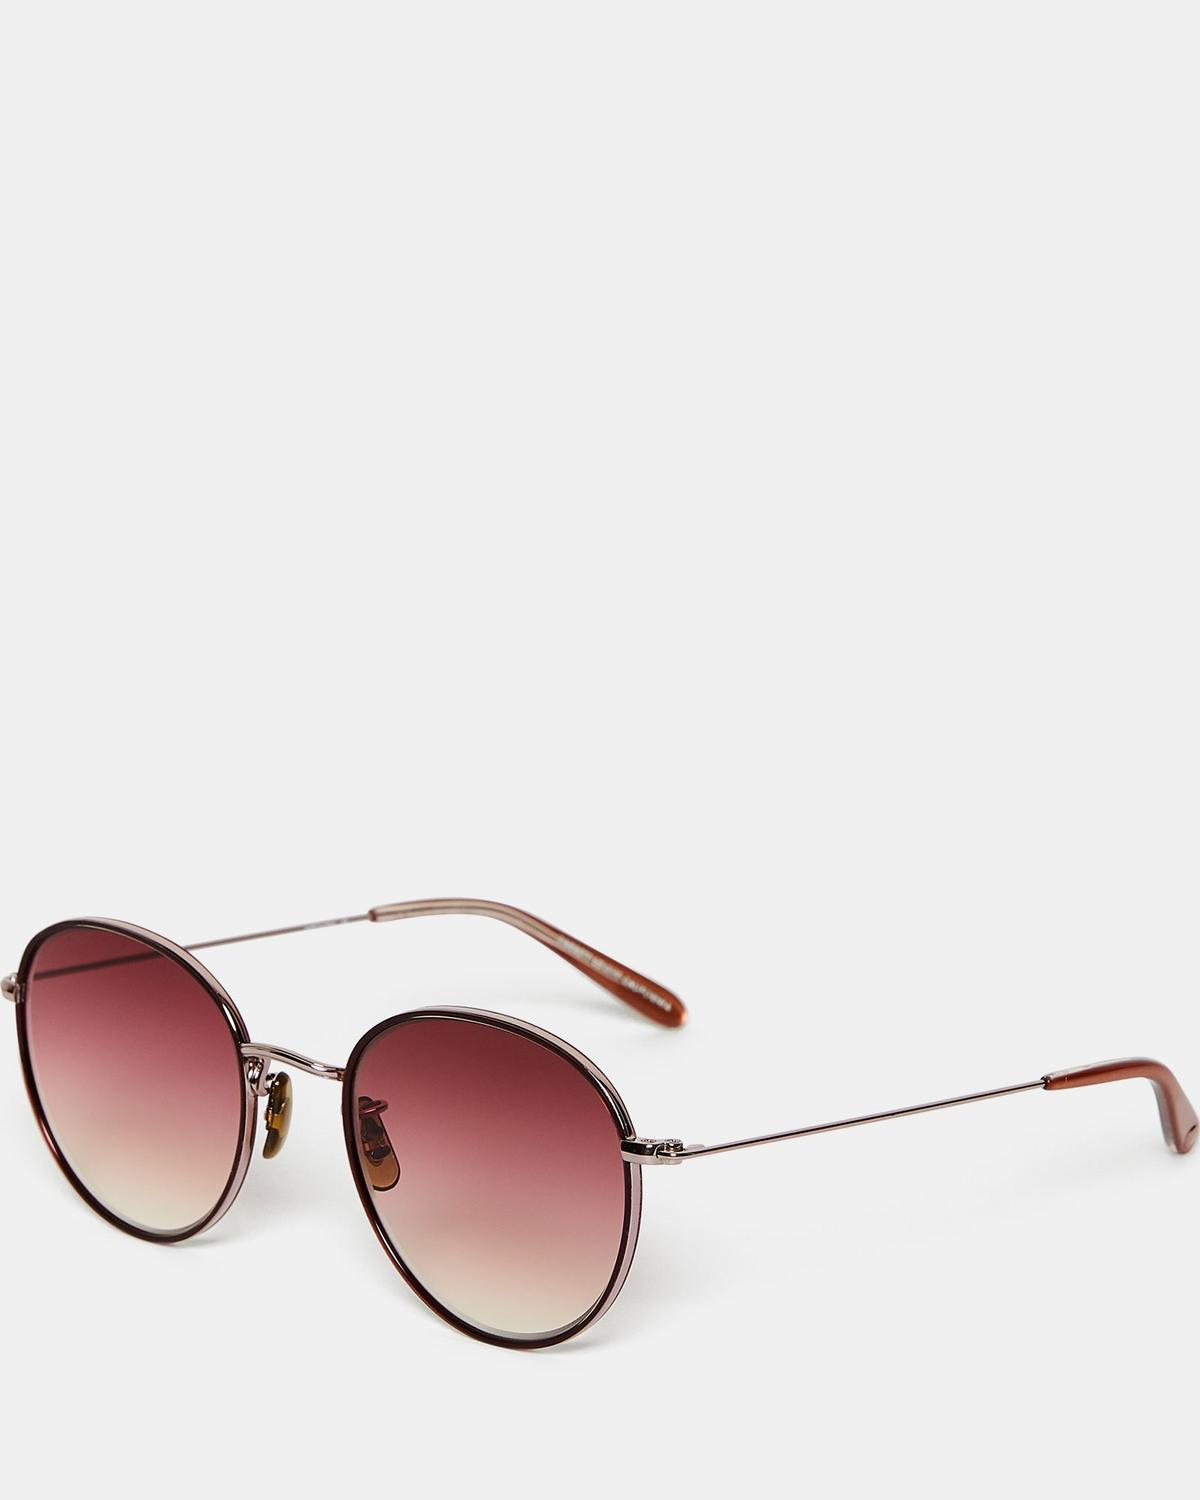 Garrett Leight Paloma Sunglasses